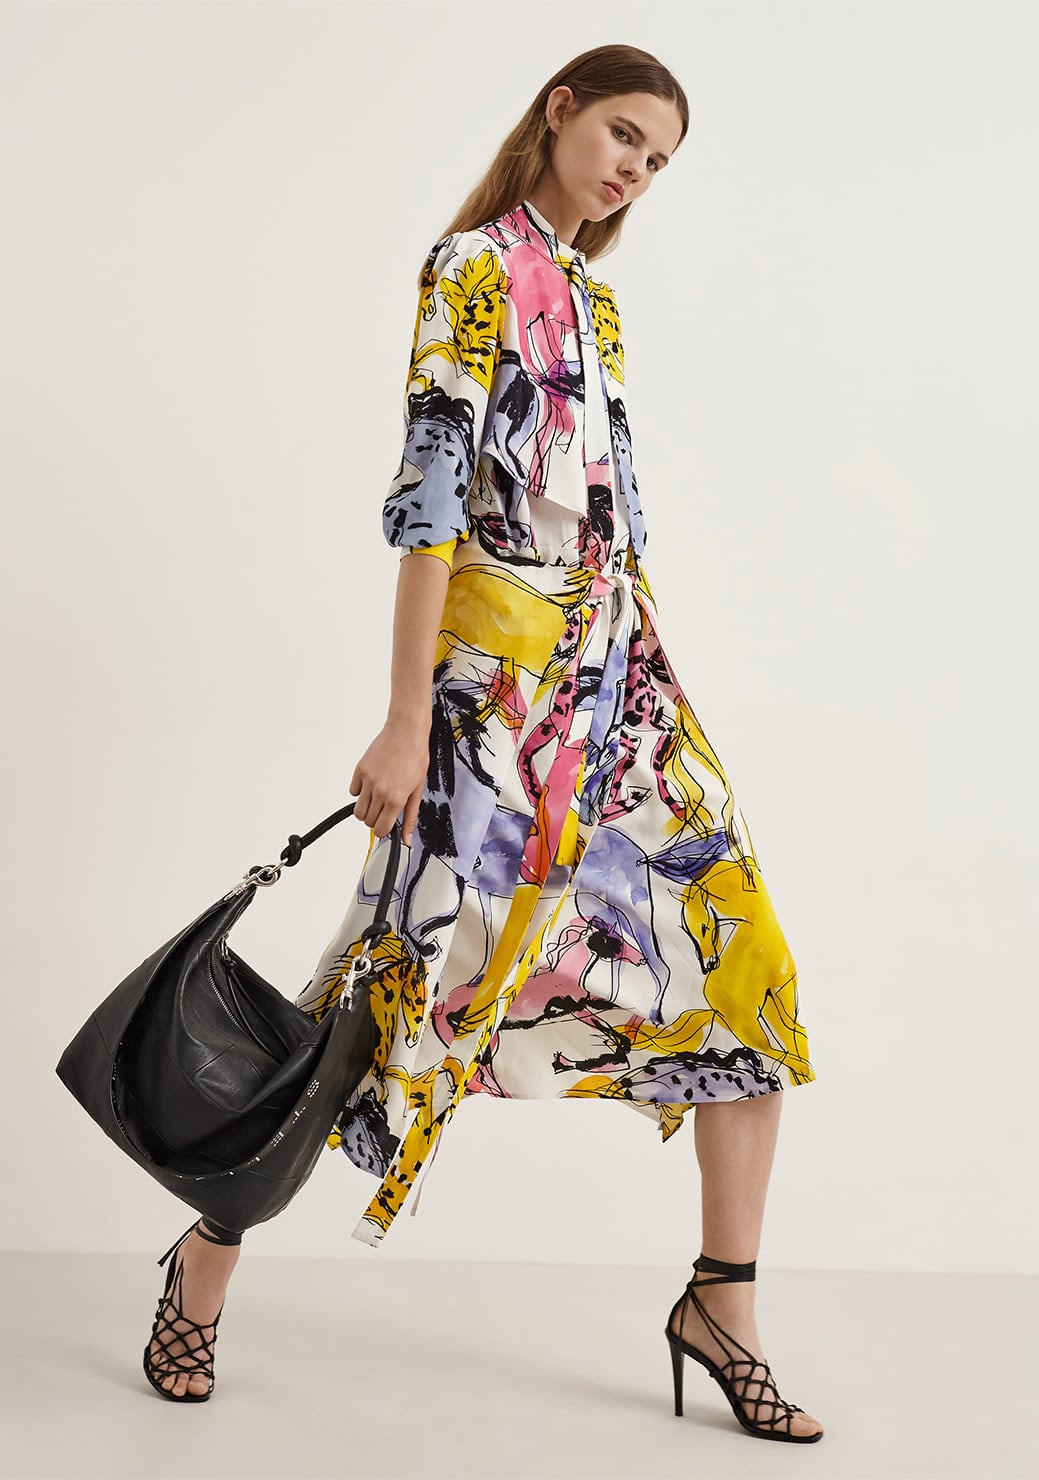 stella-mccartney-riding-high-horse-prints-1